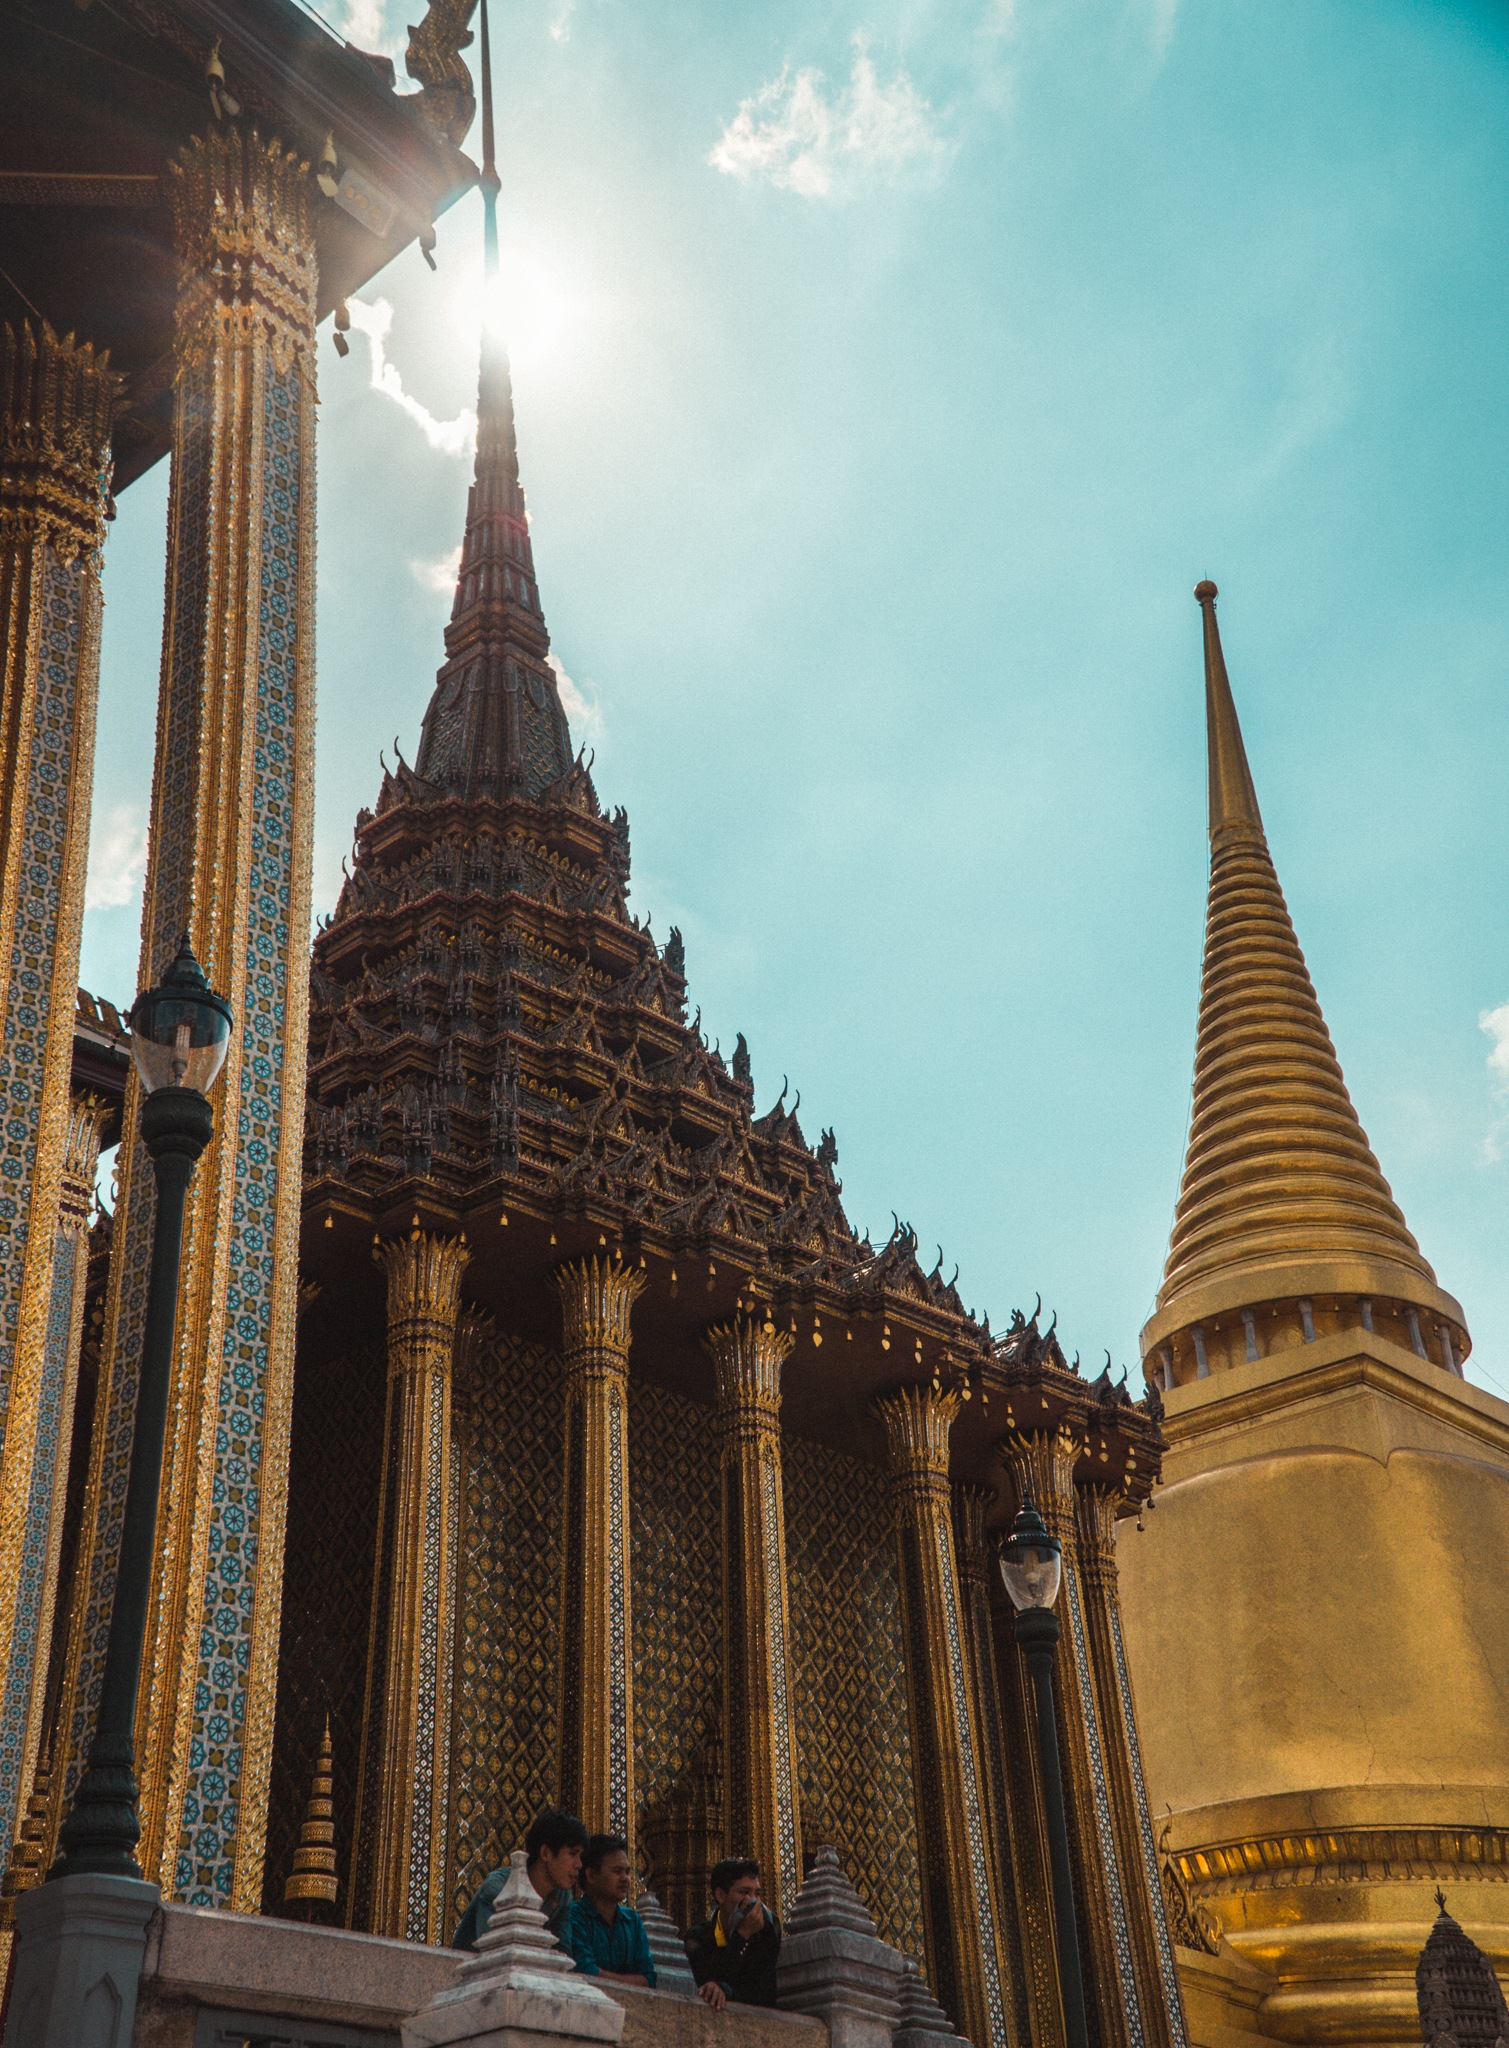 The grand palace by Pipat Best